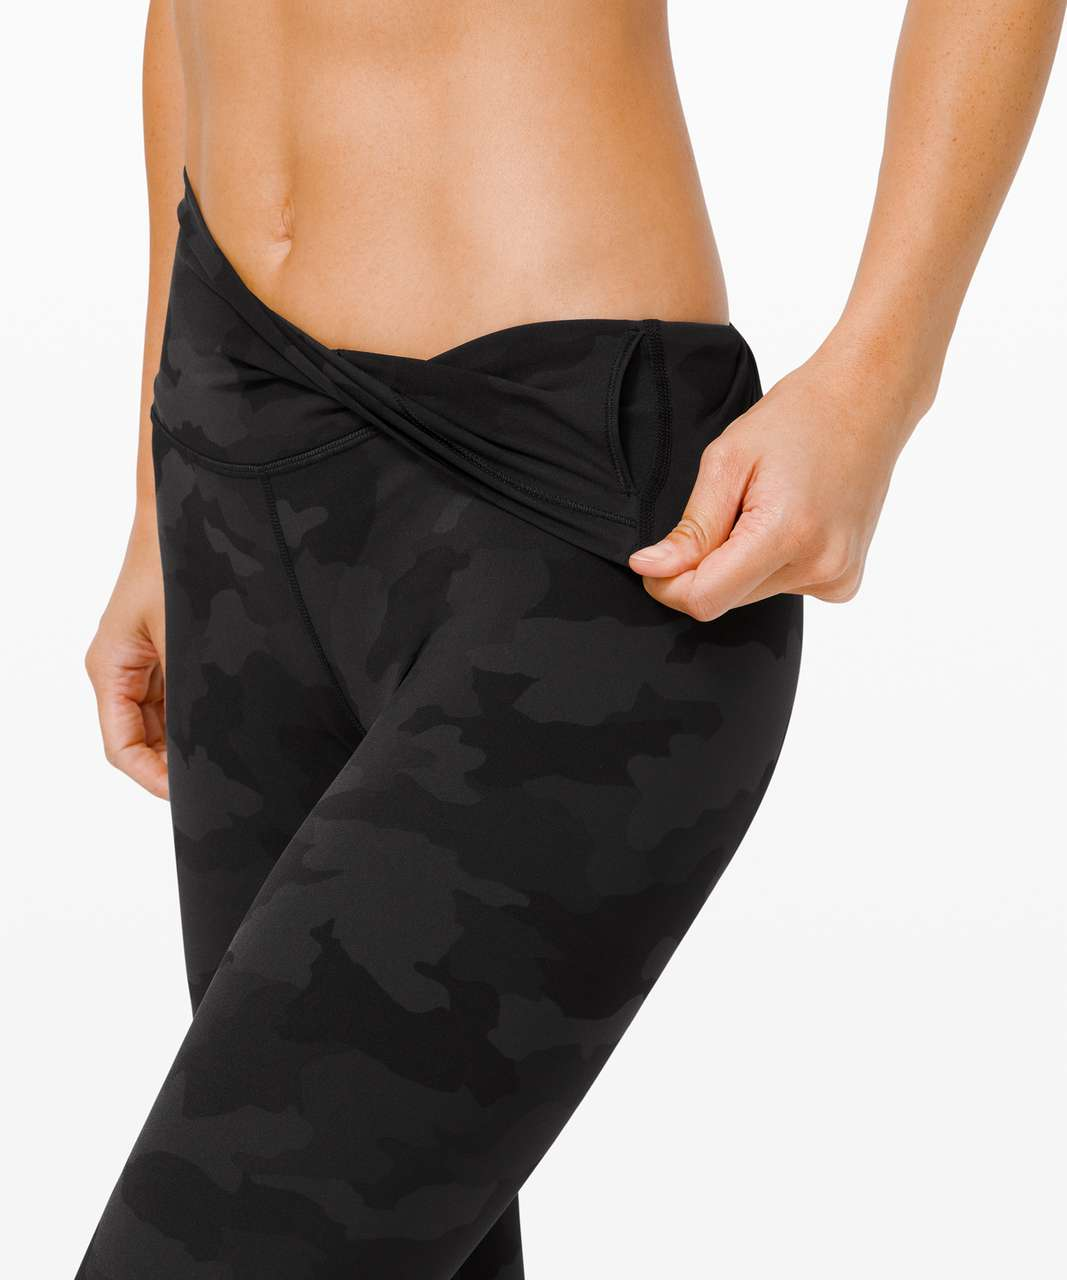 "Lululemon Wunder Under High-Rise Tight 28"" *Full-On Luxtreme - Heritage 365 Camo Deep Coal Multi"